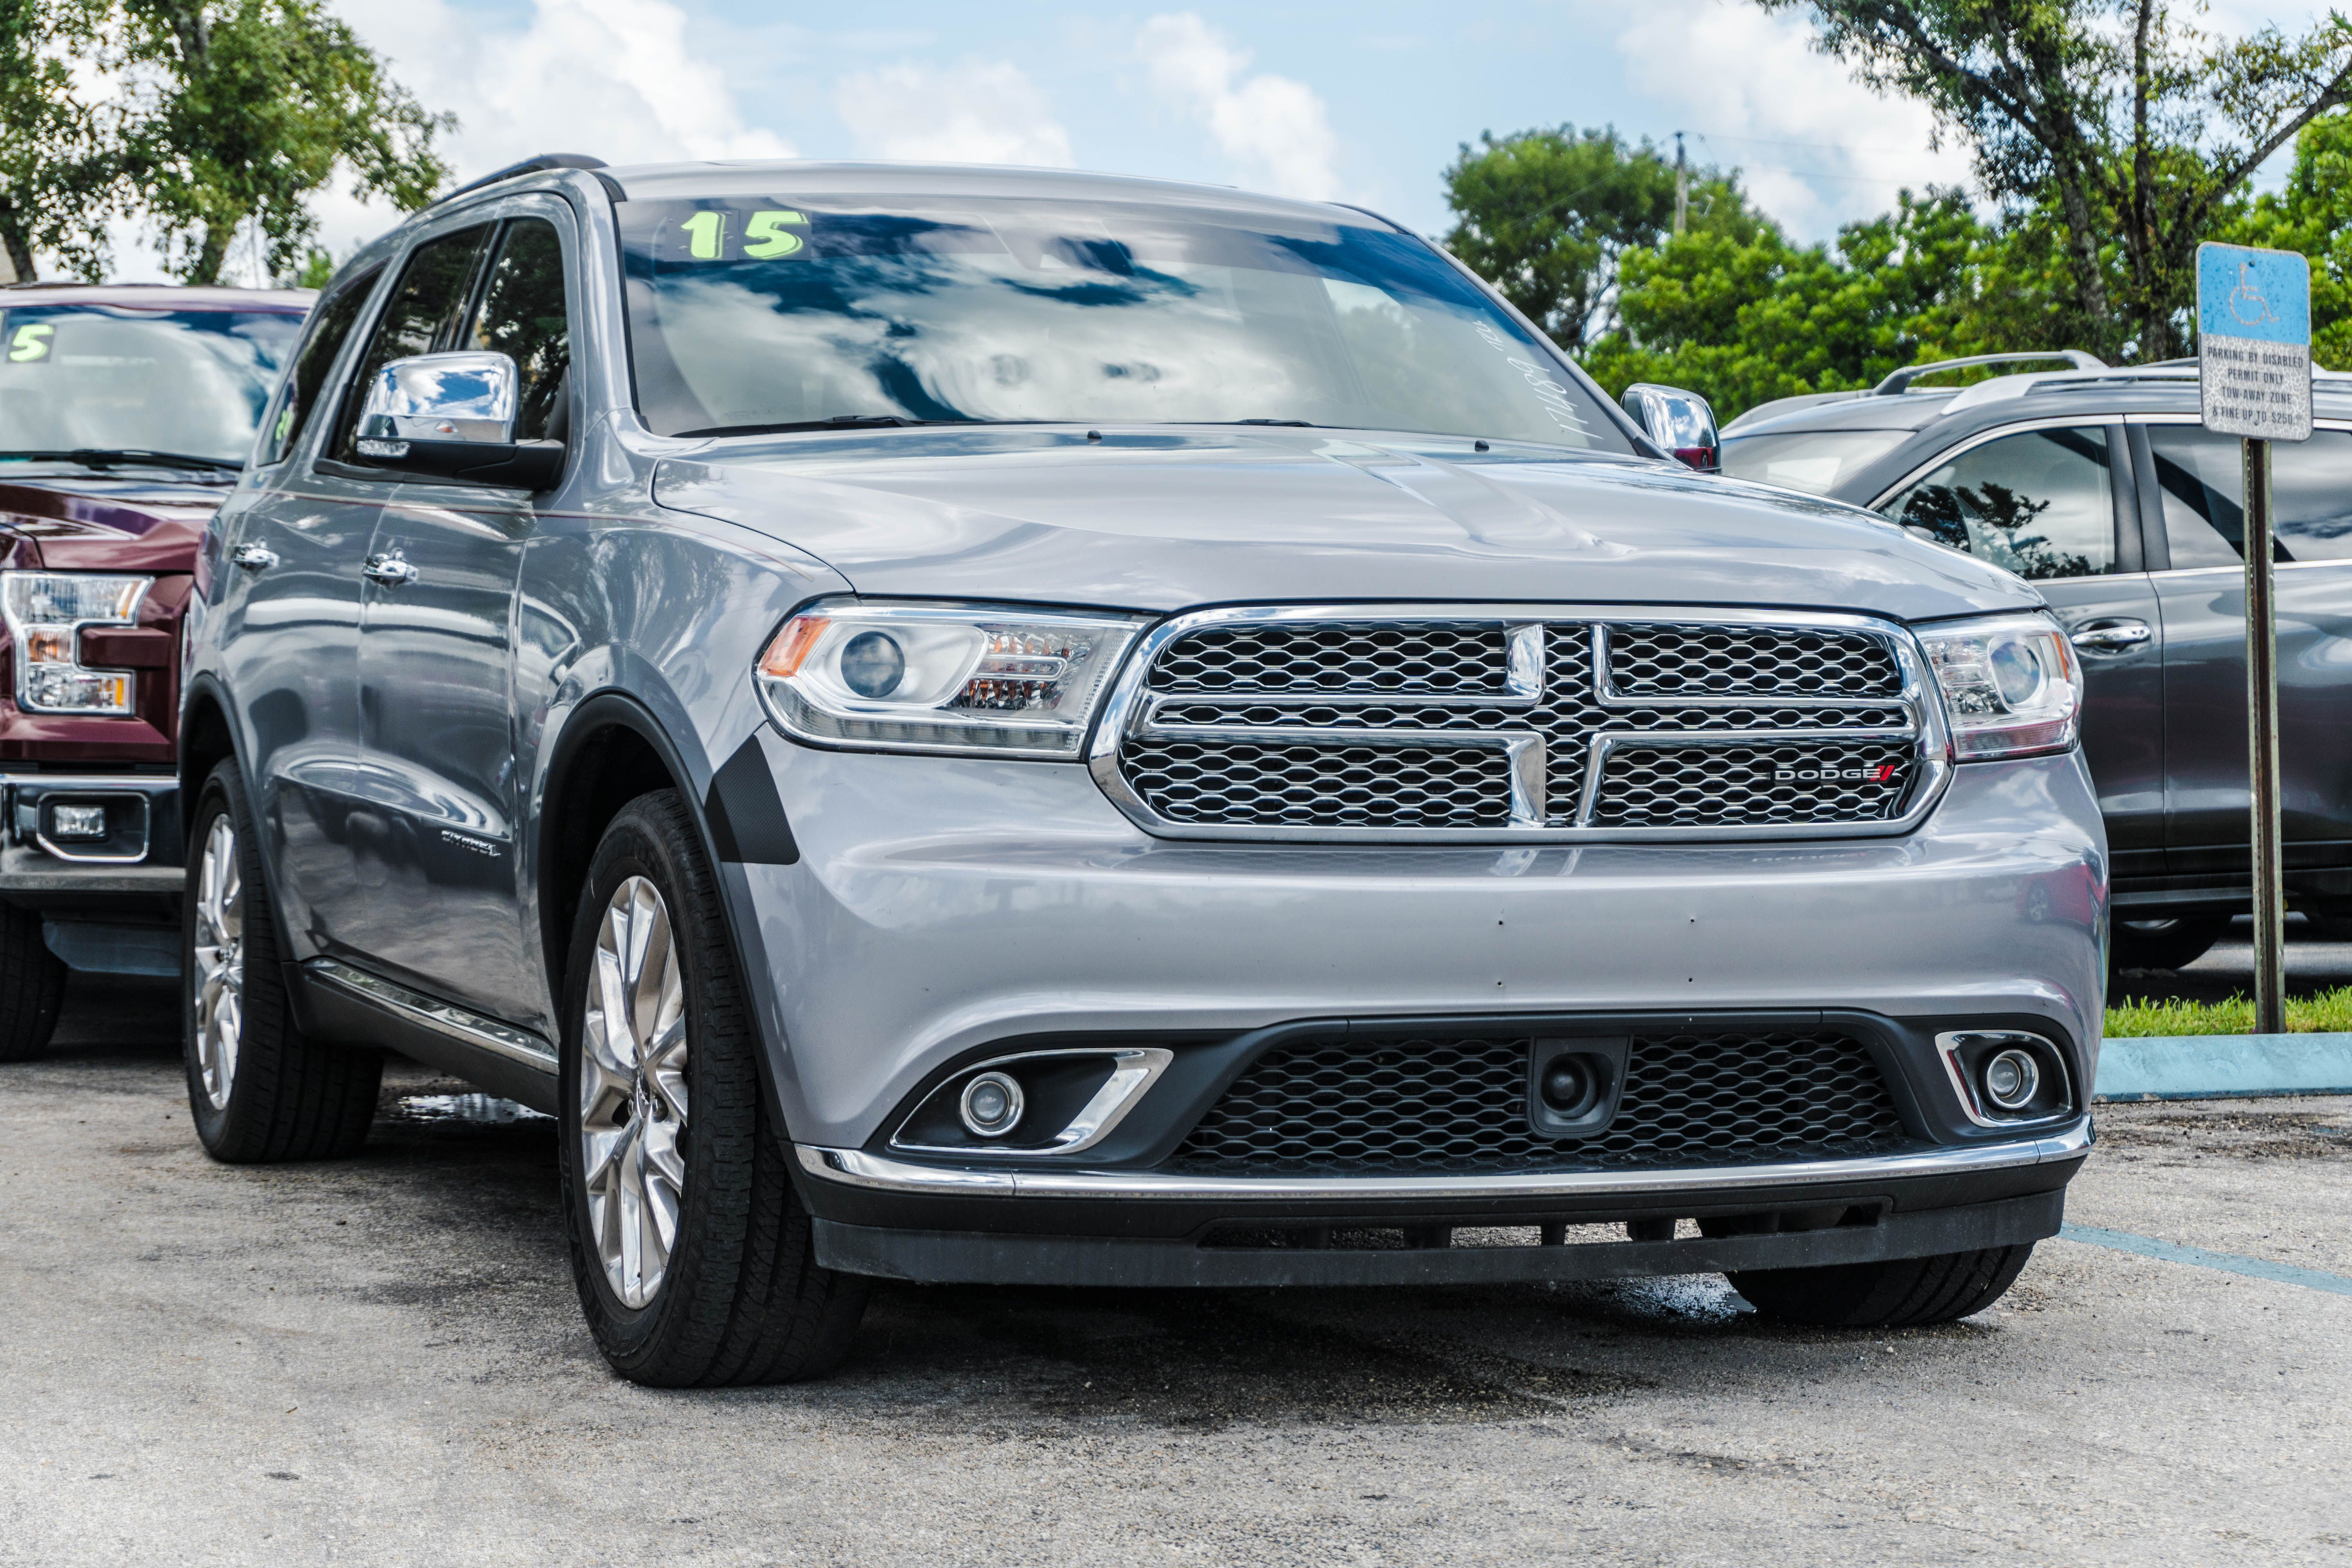 What Do You Think About This 15 Dodge Durango Citadel Or Not Michaelsautosales Dodge Dodgedurango Dodgedurangocitad Dodge Durango Dodge Cars For Sale